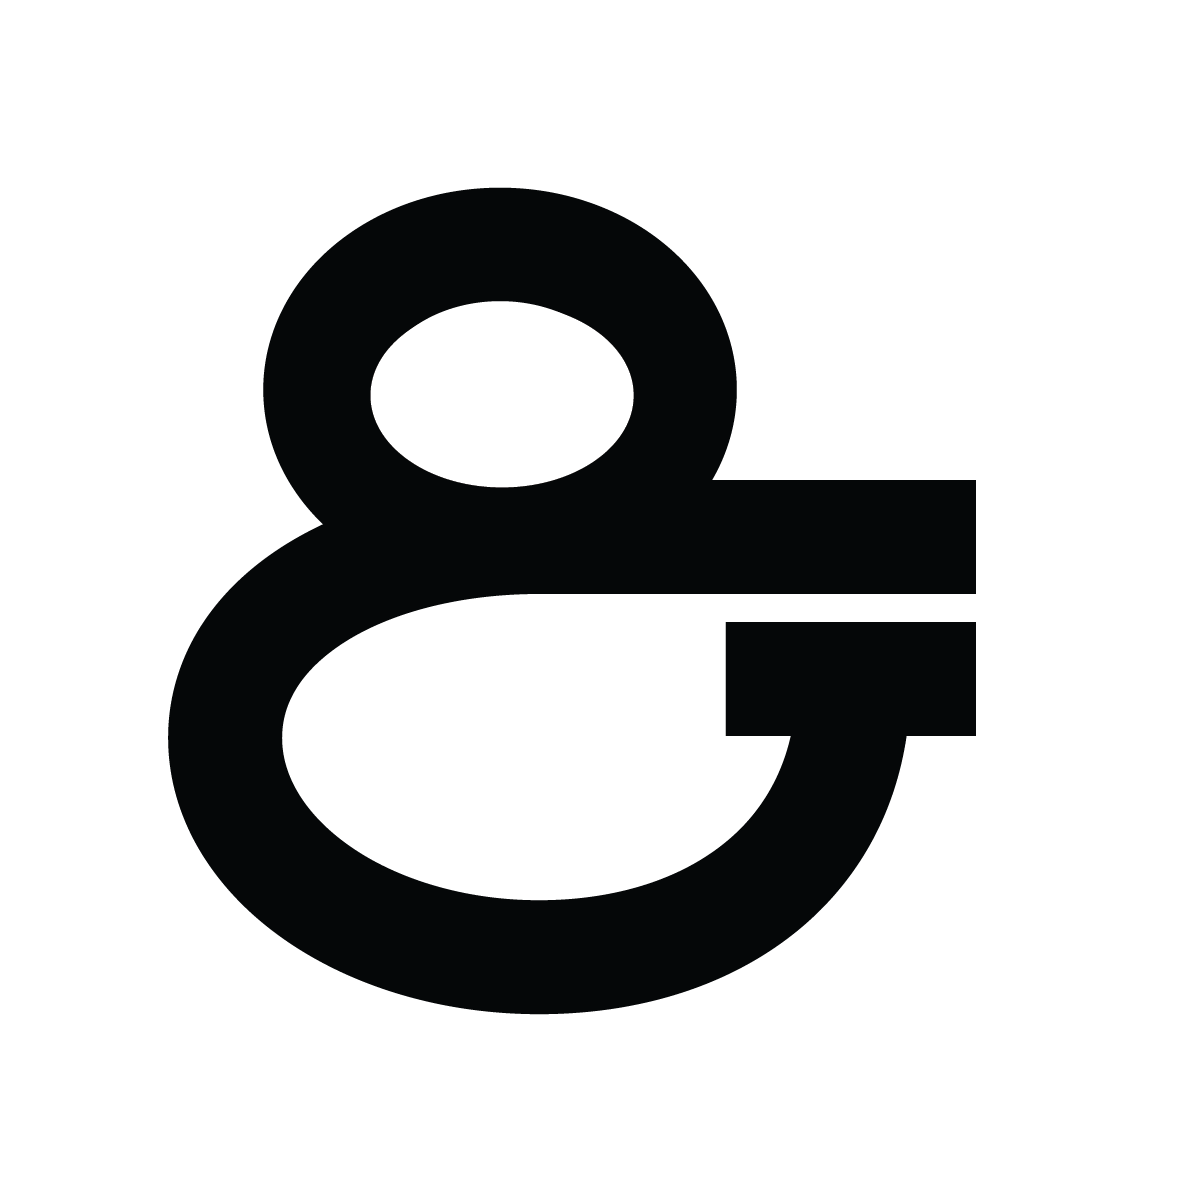 Ampersand_Grid_02_old-14